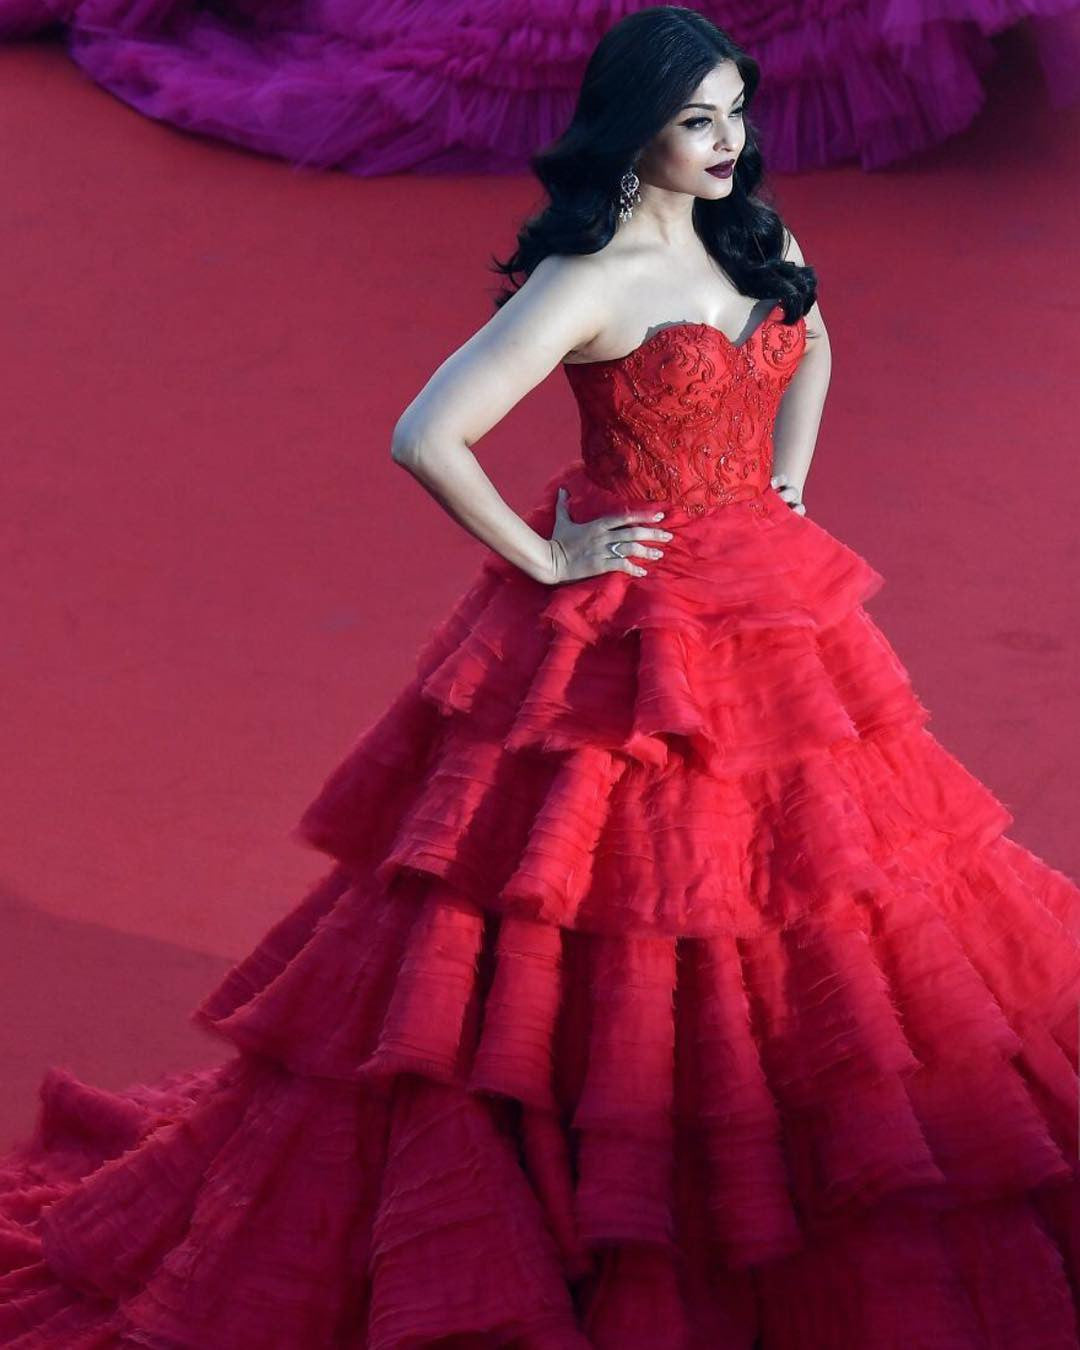 Aishwarya Rai Bachchan Looked Like A Barbie Doll In Ralph & Russo's Multi-Layered Red Gown  At Cannes Film Festival